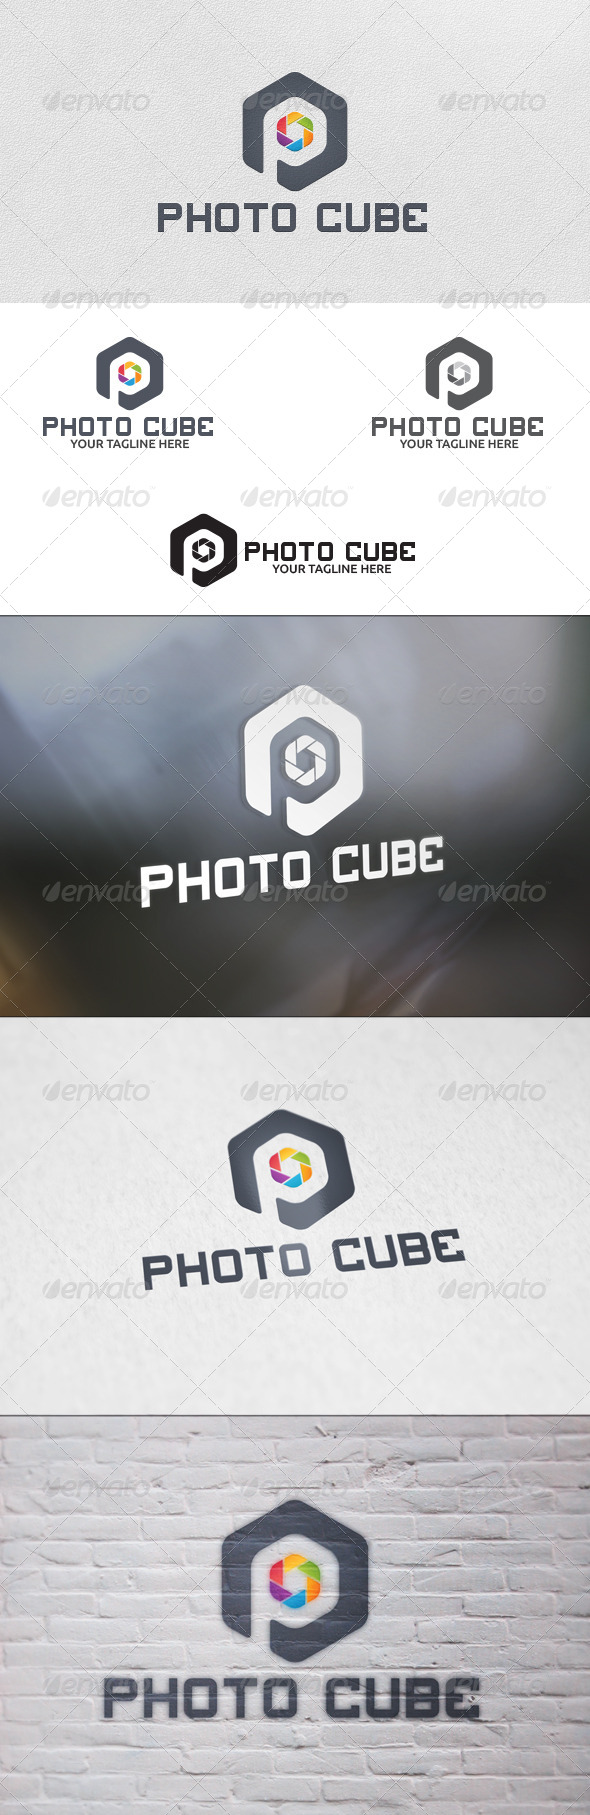 GraphicRiver Photo Cube Logo Template 5694124